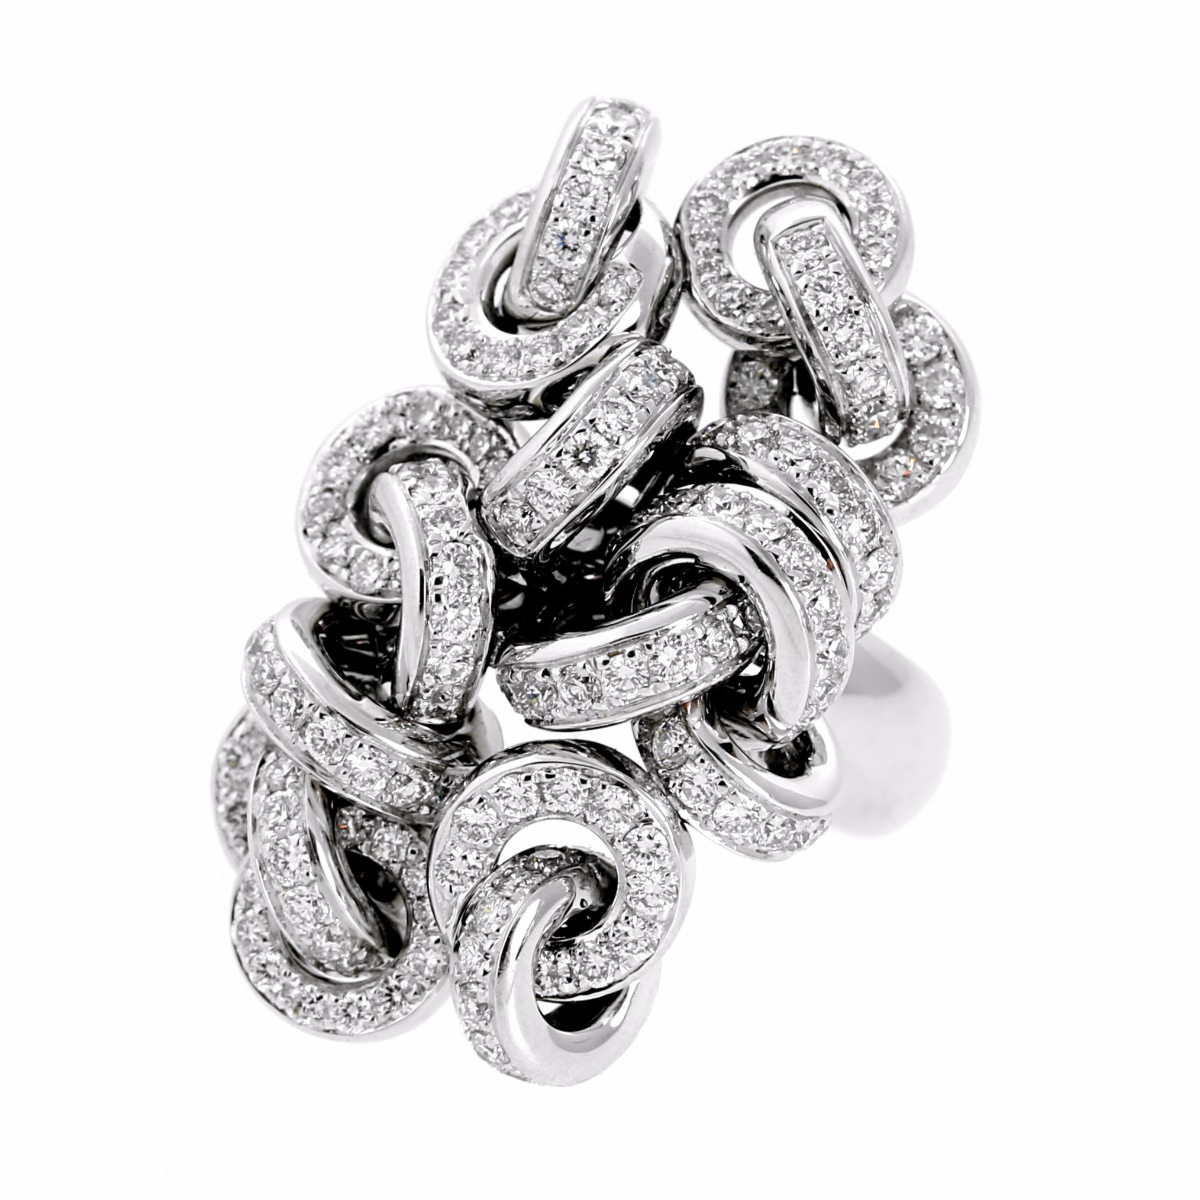 De Grisogono Diamond Cocktail White Gold Ring - De Grisogono Jewelry